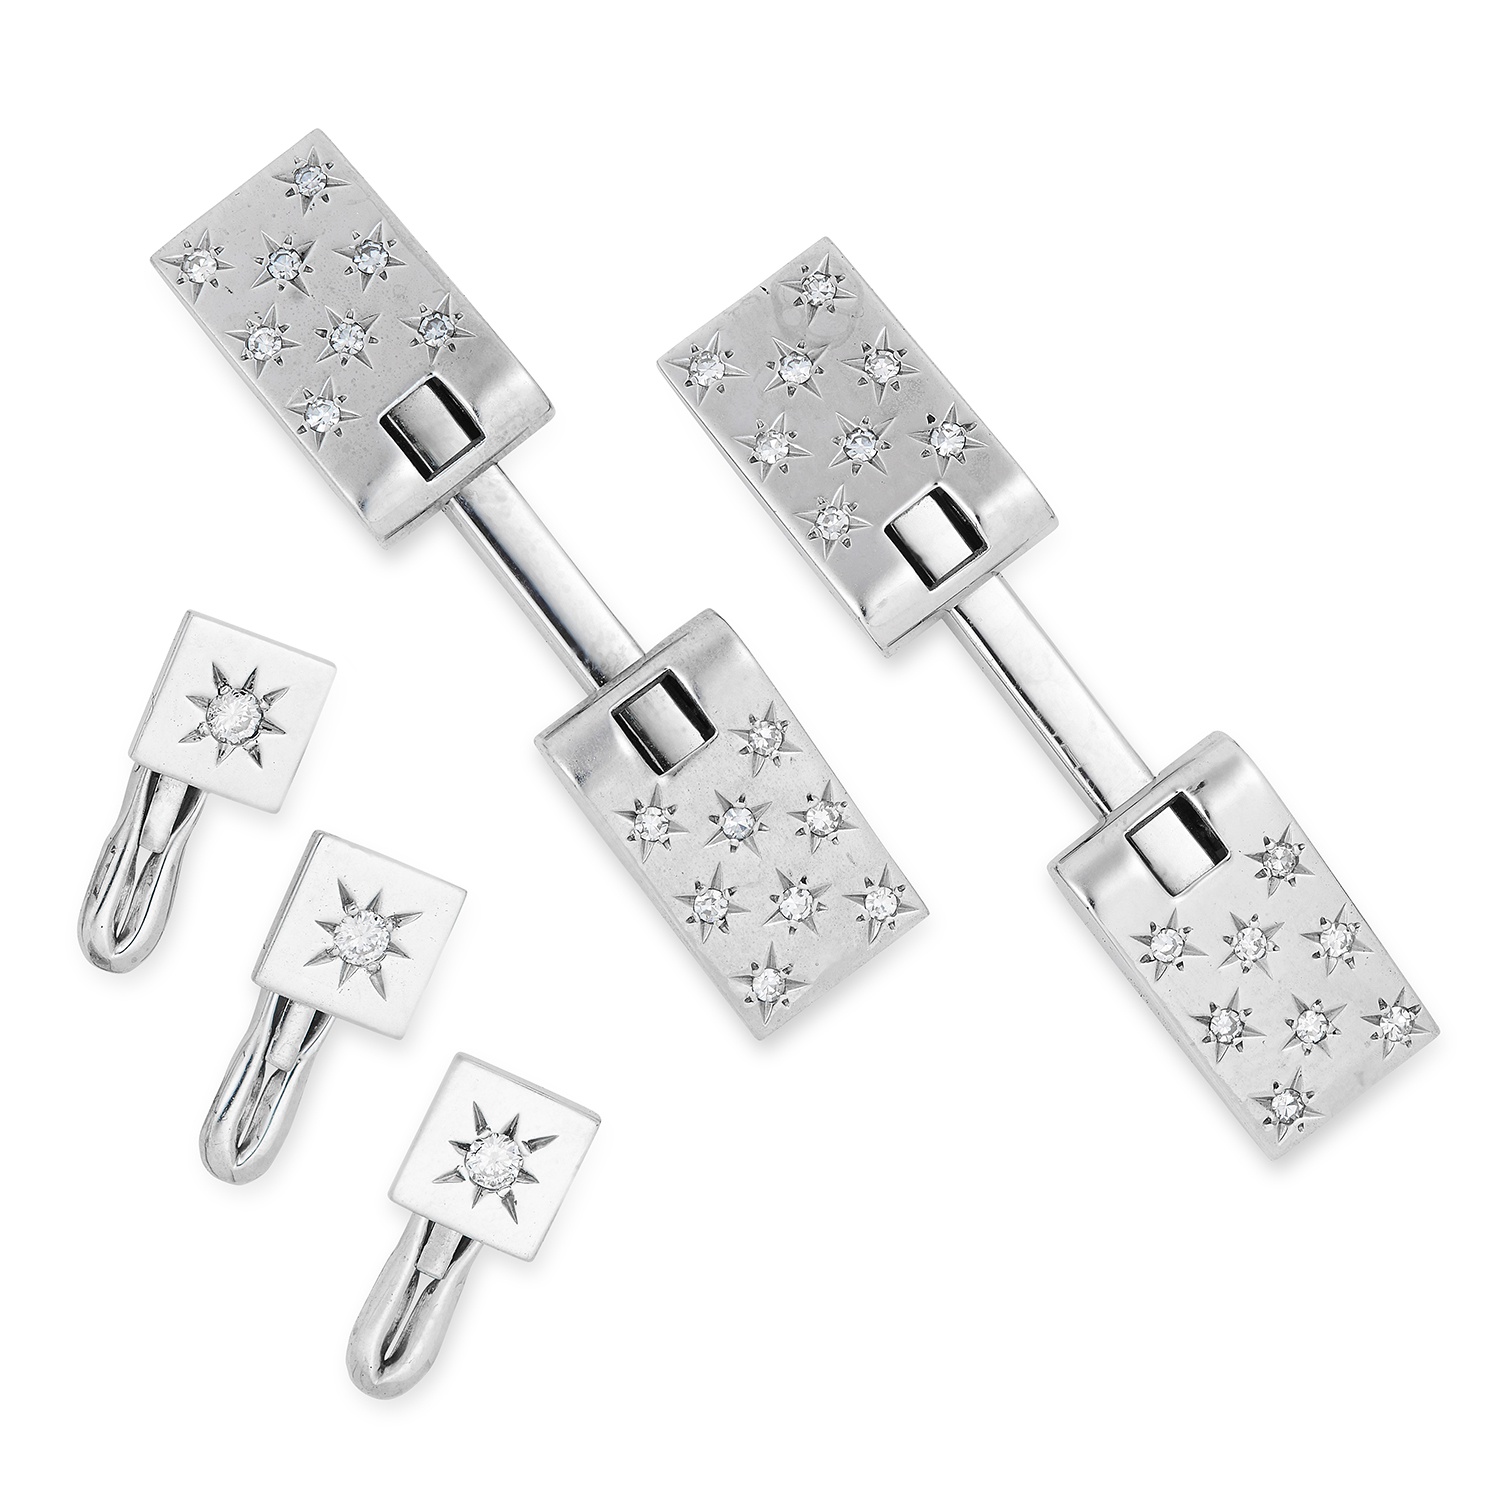 Los 124 - DIAMOND GENTLEMAN'S DRESS SET, GUBELIN formed of tapering, set with round cut diamonds in star